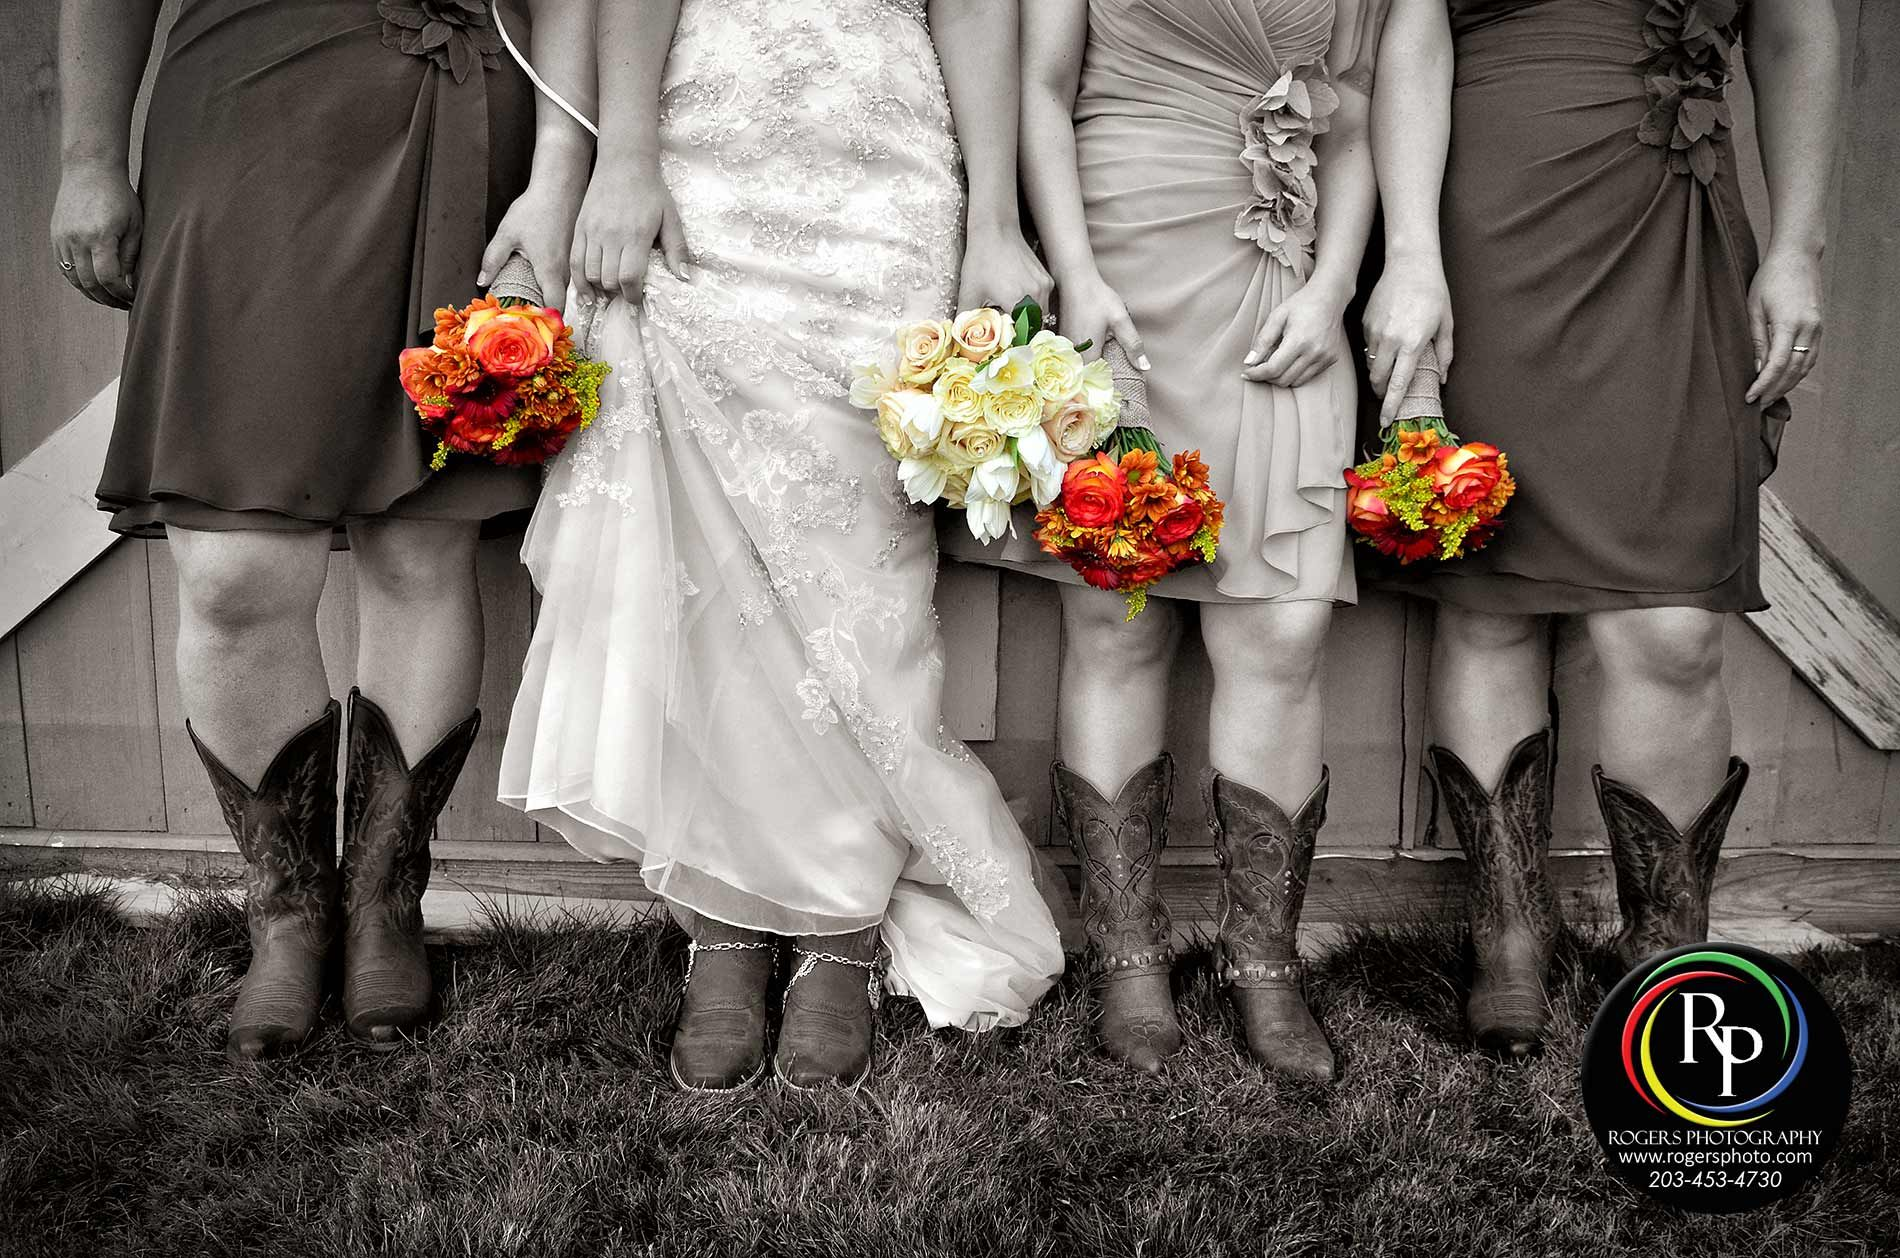 A Country Style Wedding Deserves The Proper Attire Weddingshoes Bridesshoes Cowboyboots